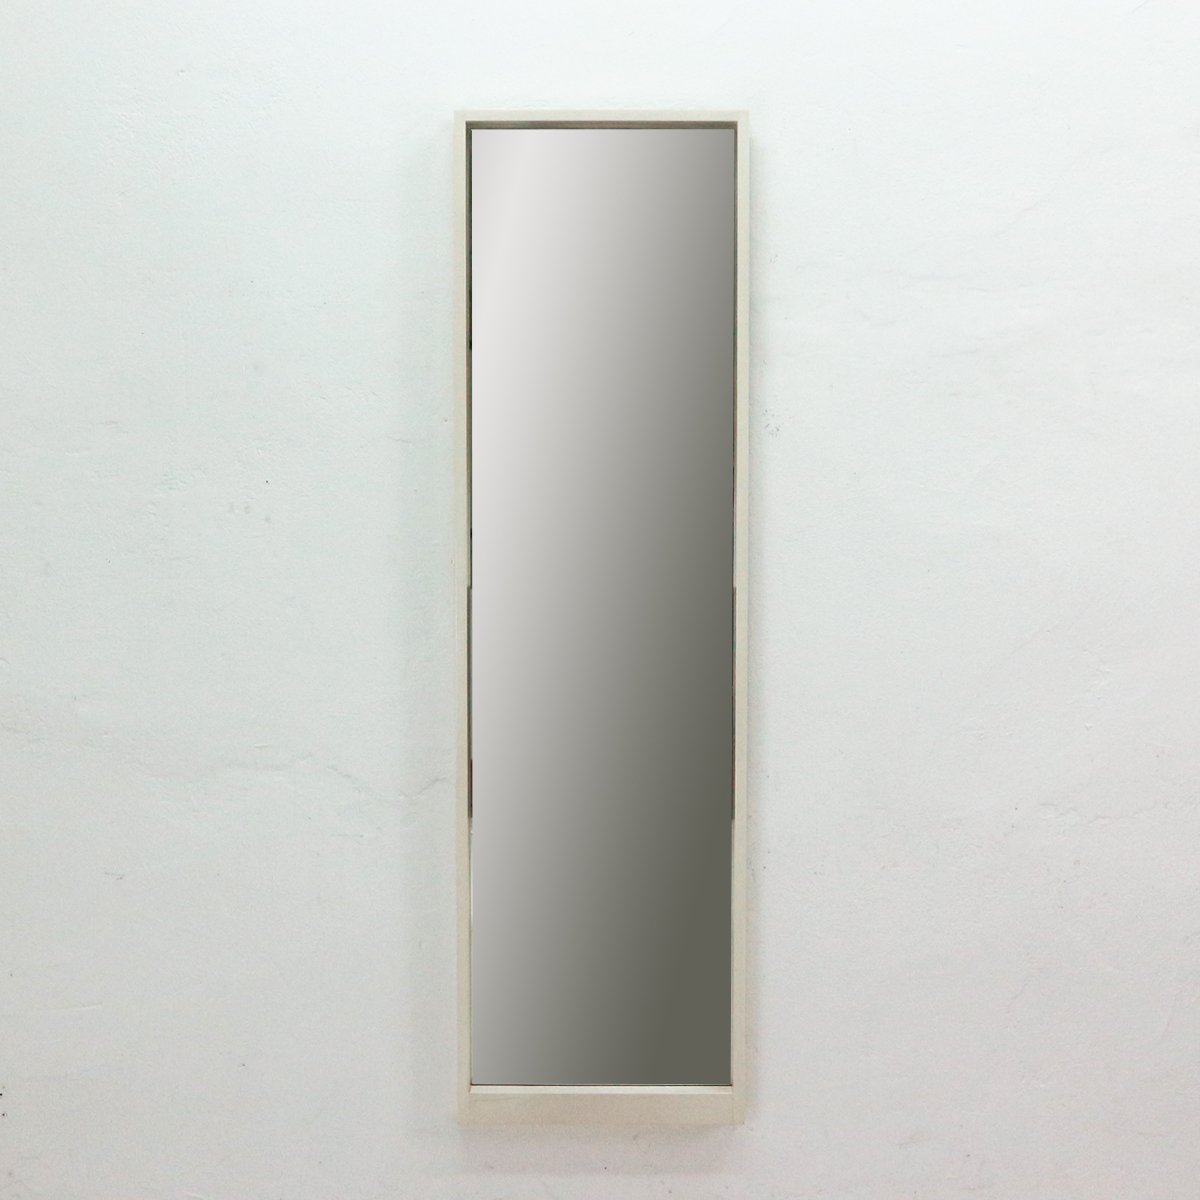 Large wall mirrors with frame